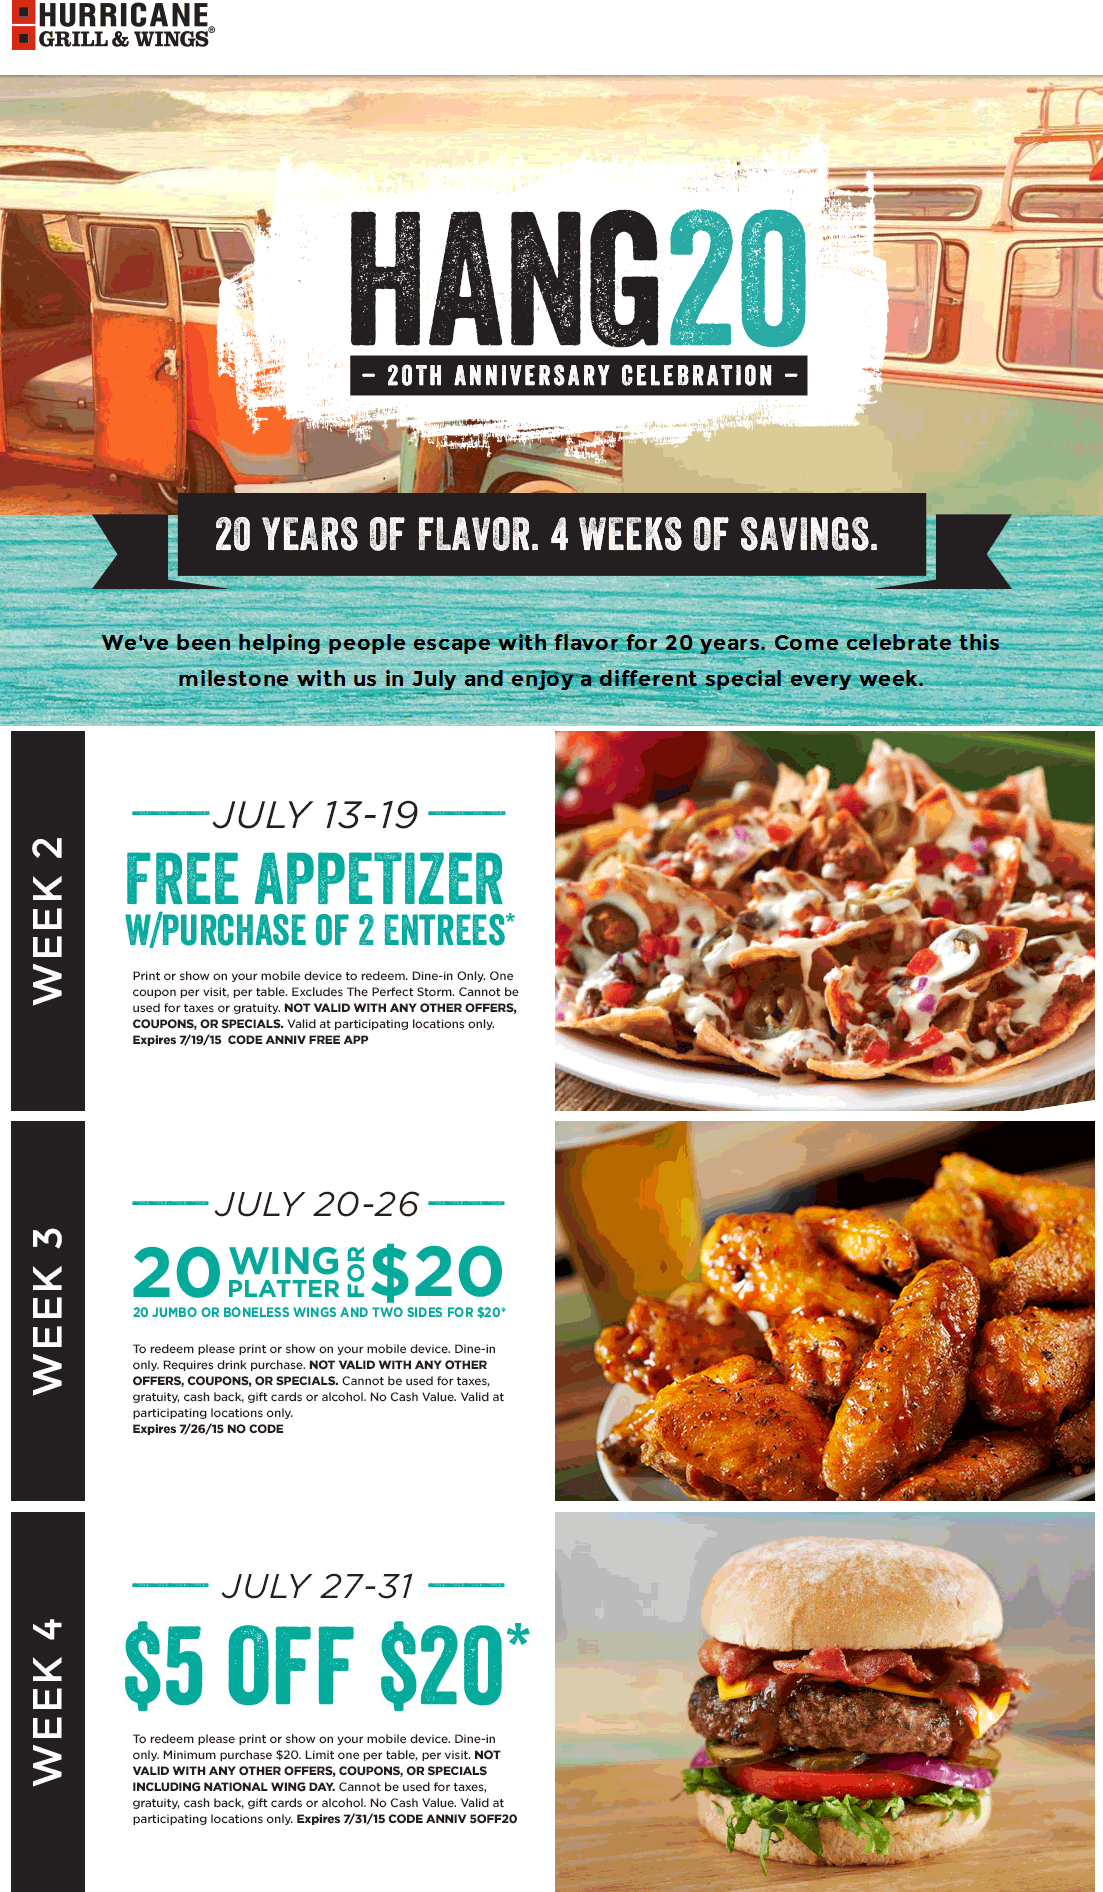 Hurricane Grill & Wings Coupon December 2017 Free appetizer & more at Hurricane Grill & Wings